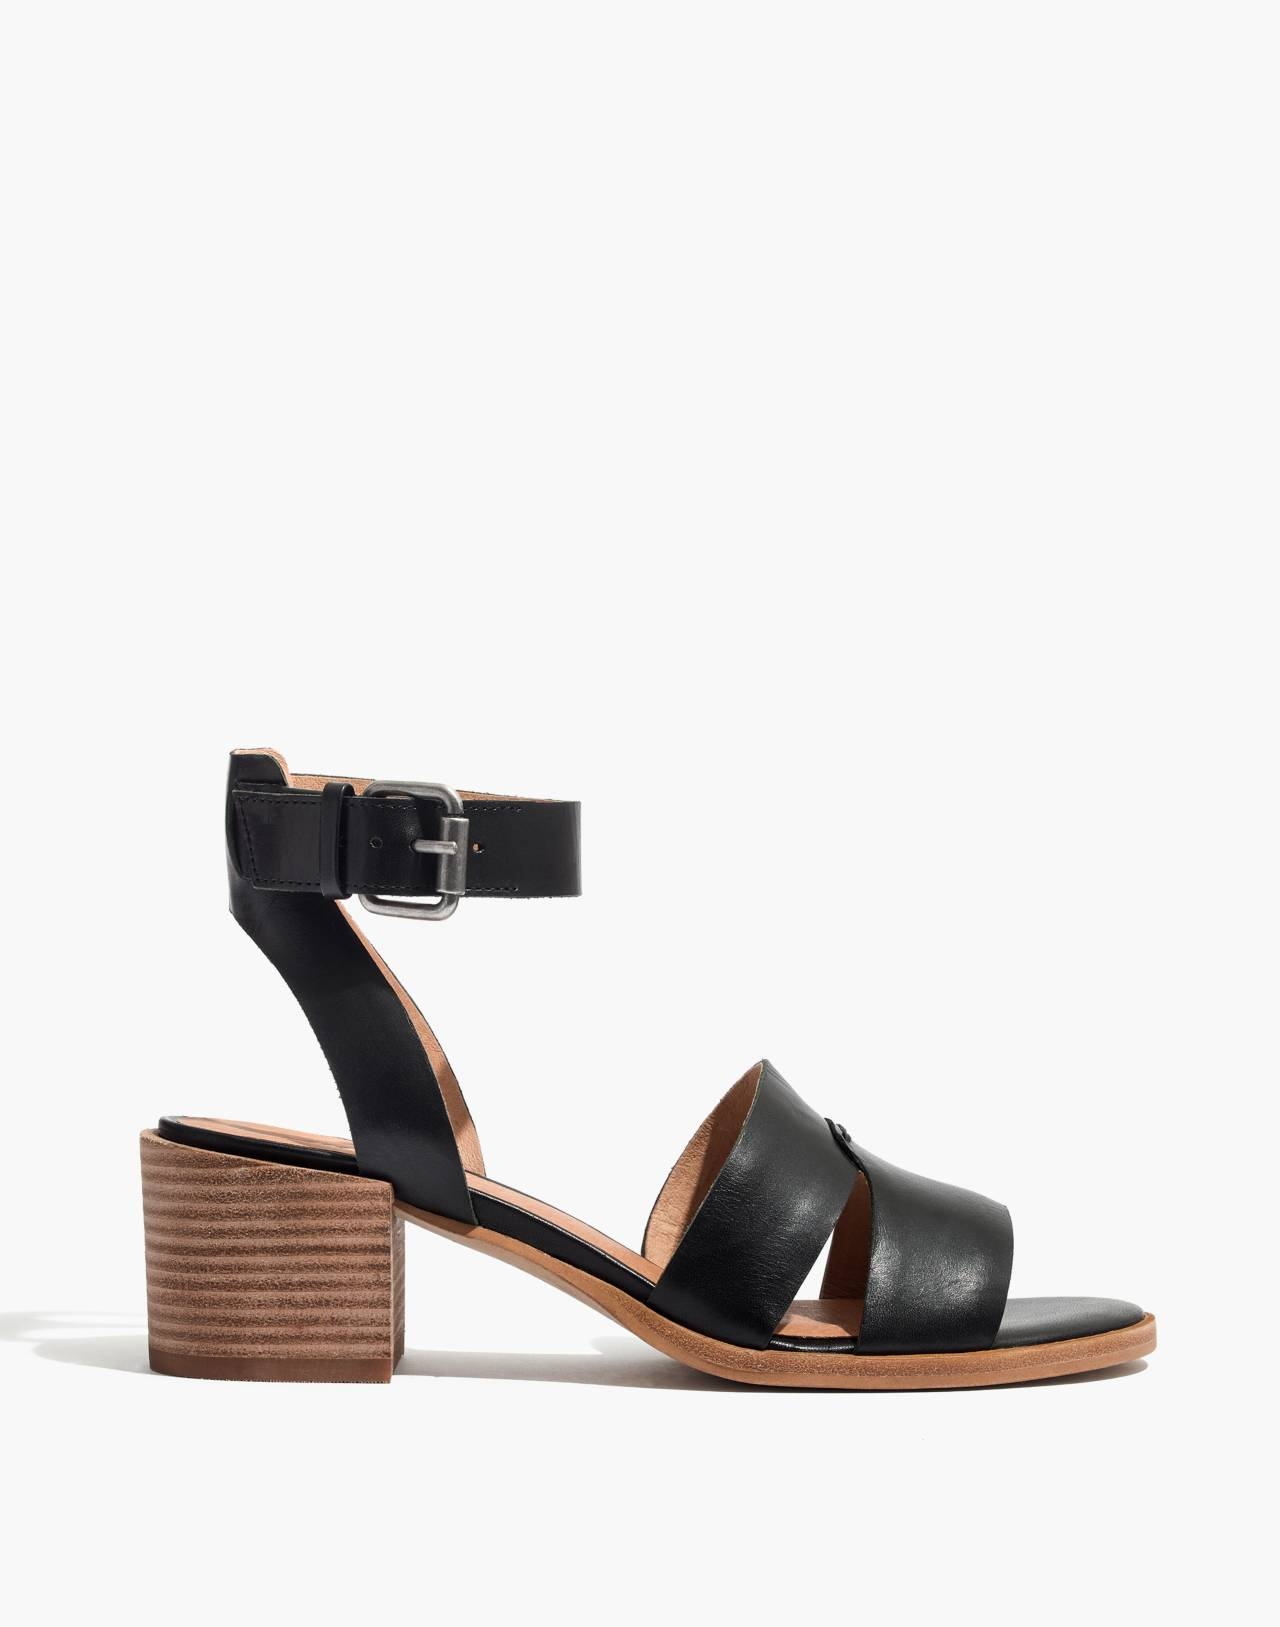 The Kate Sandal in true black image 2